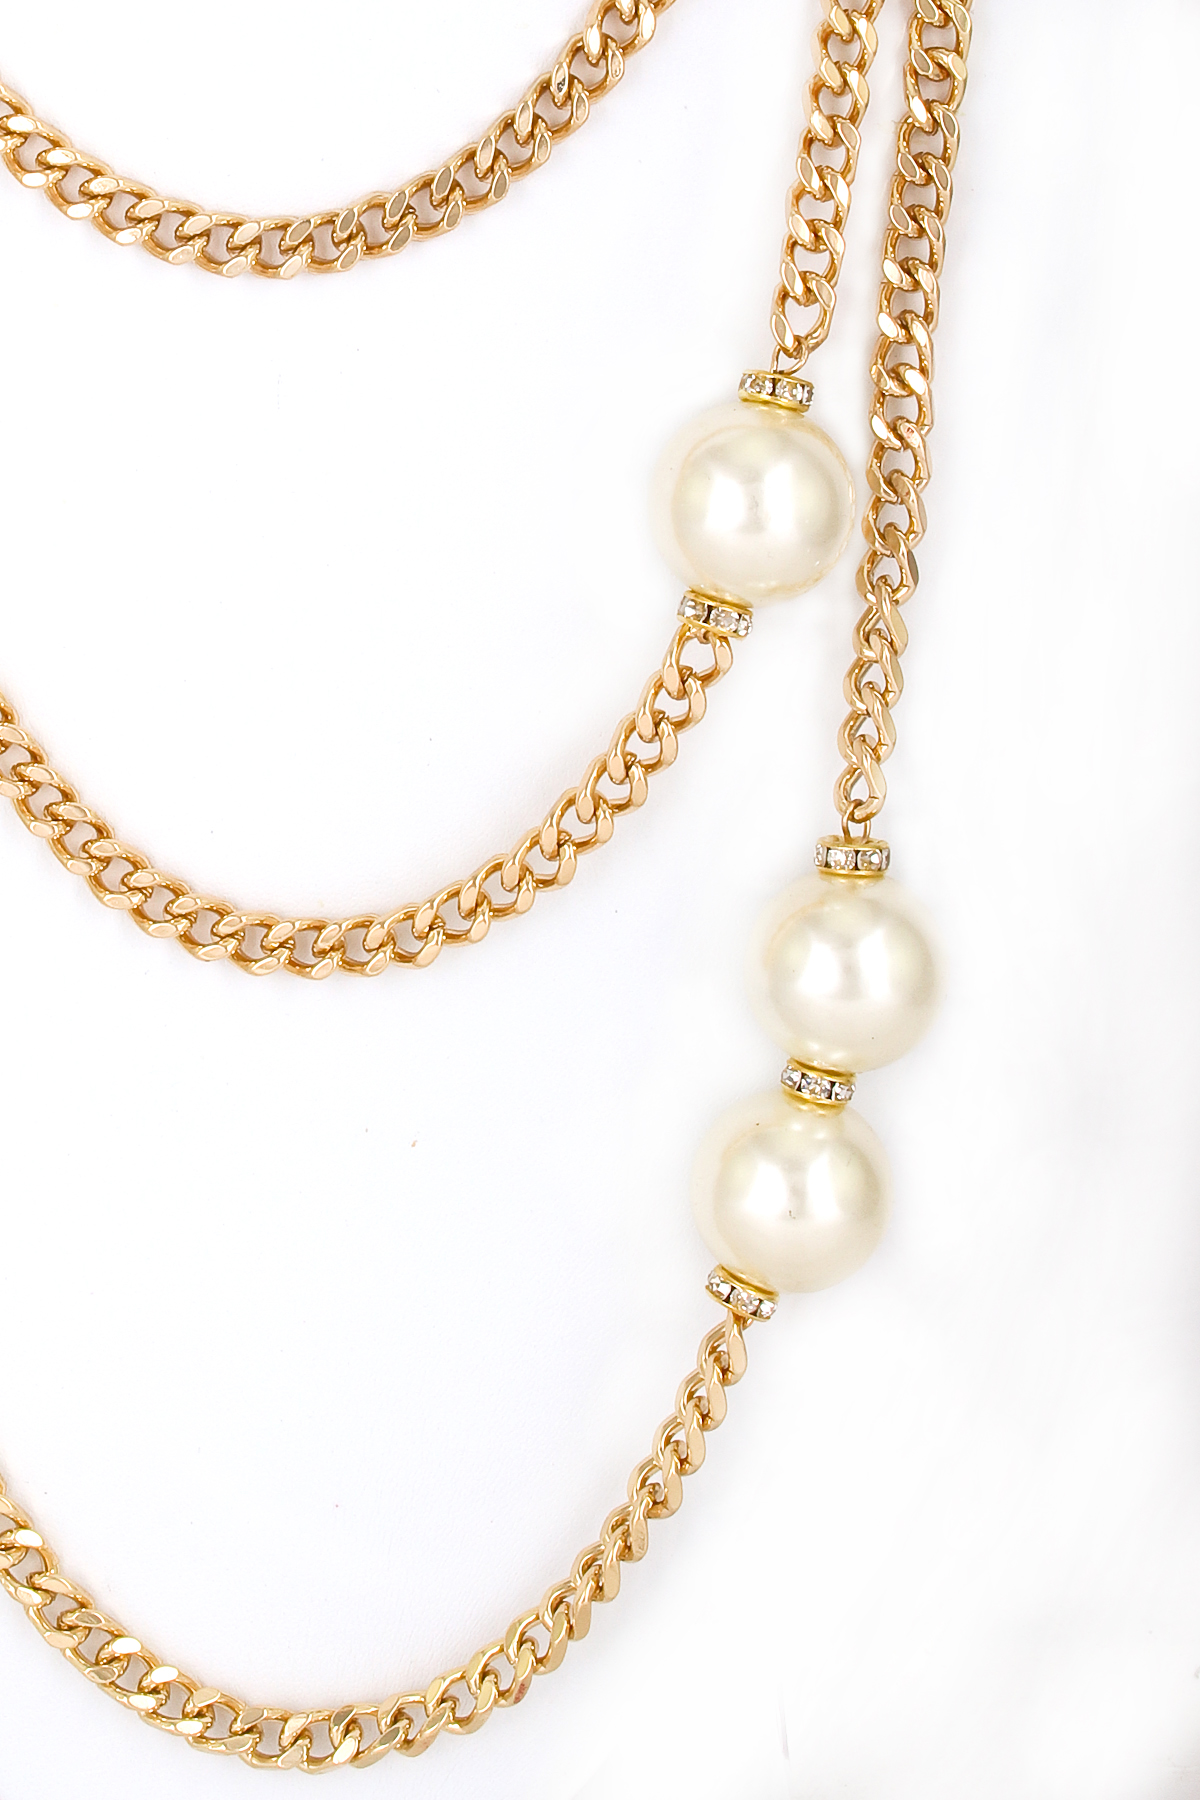 Layered Crystal Rondelle And Pearl Necklace Set Necklaces